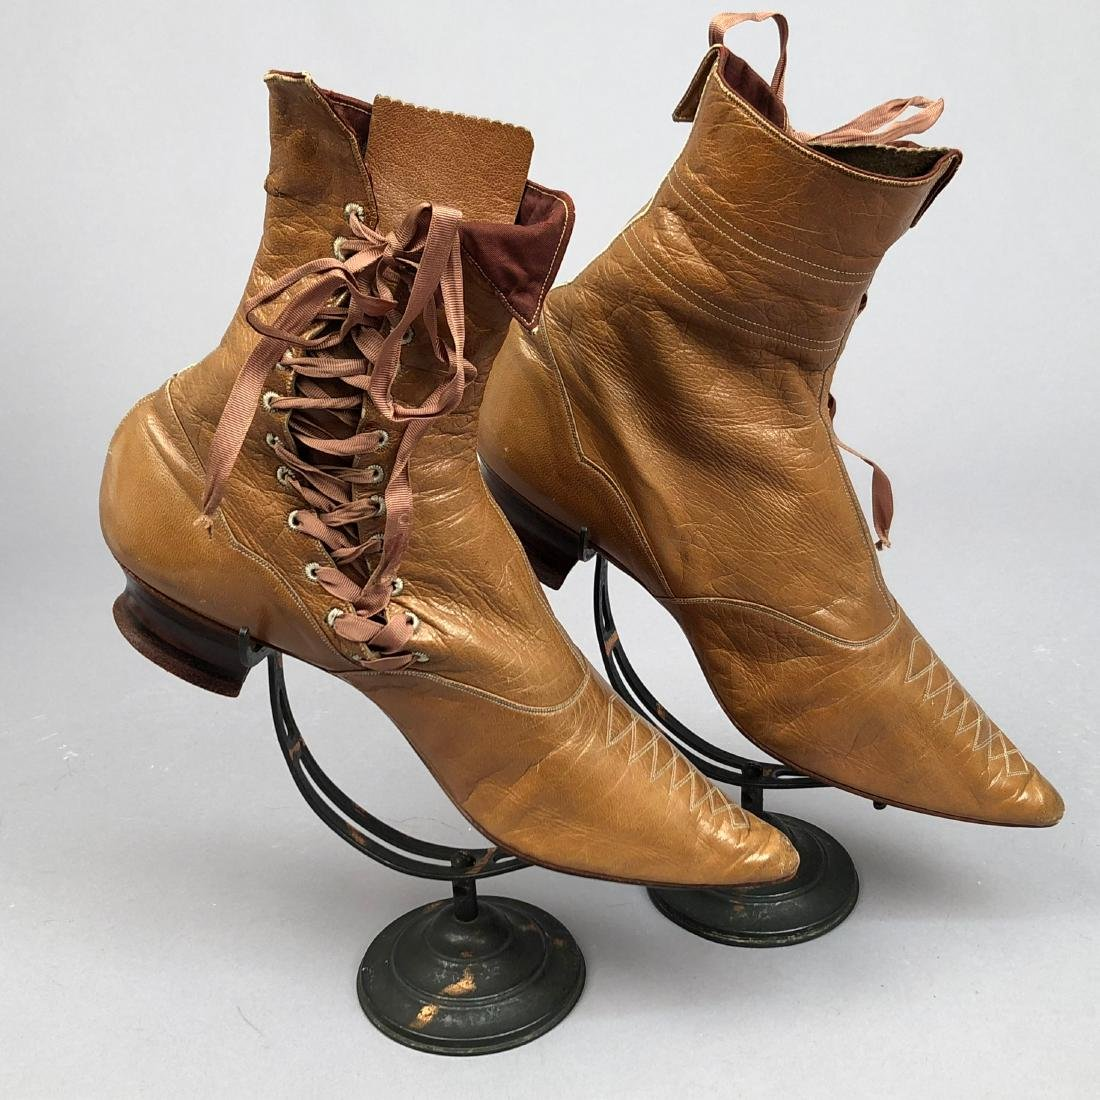 LADY'S SIDE-LACING BOOTS with TOPSTITCHING, 1890s - 2